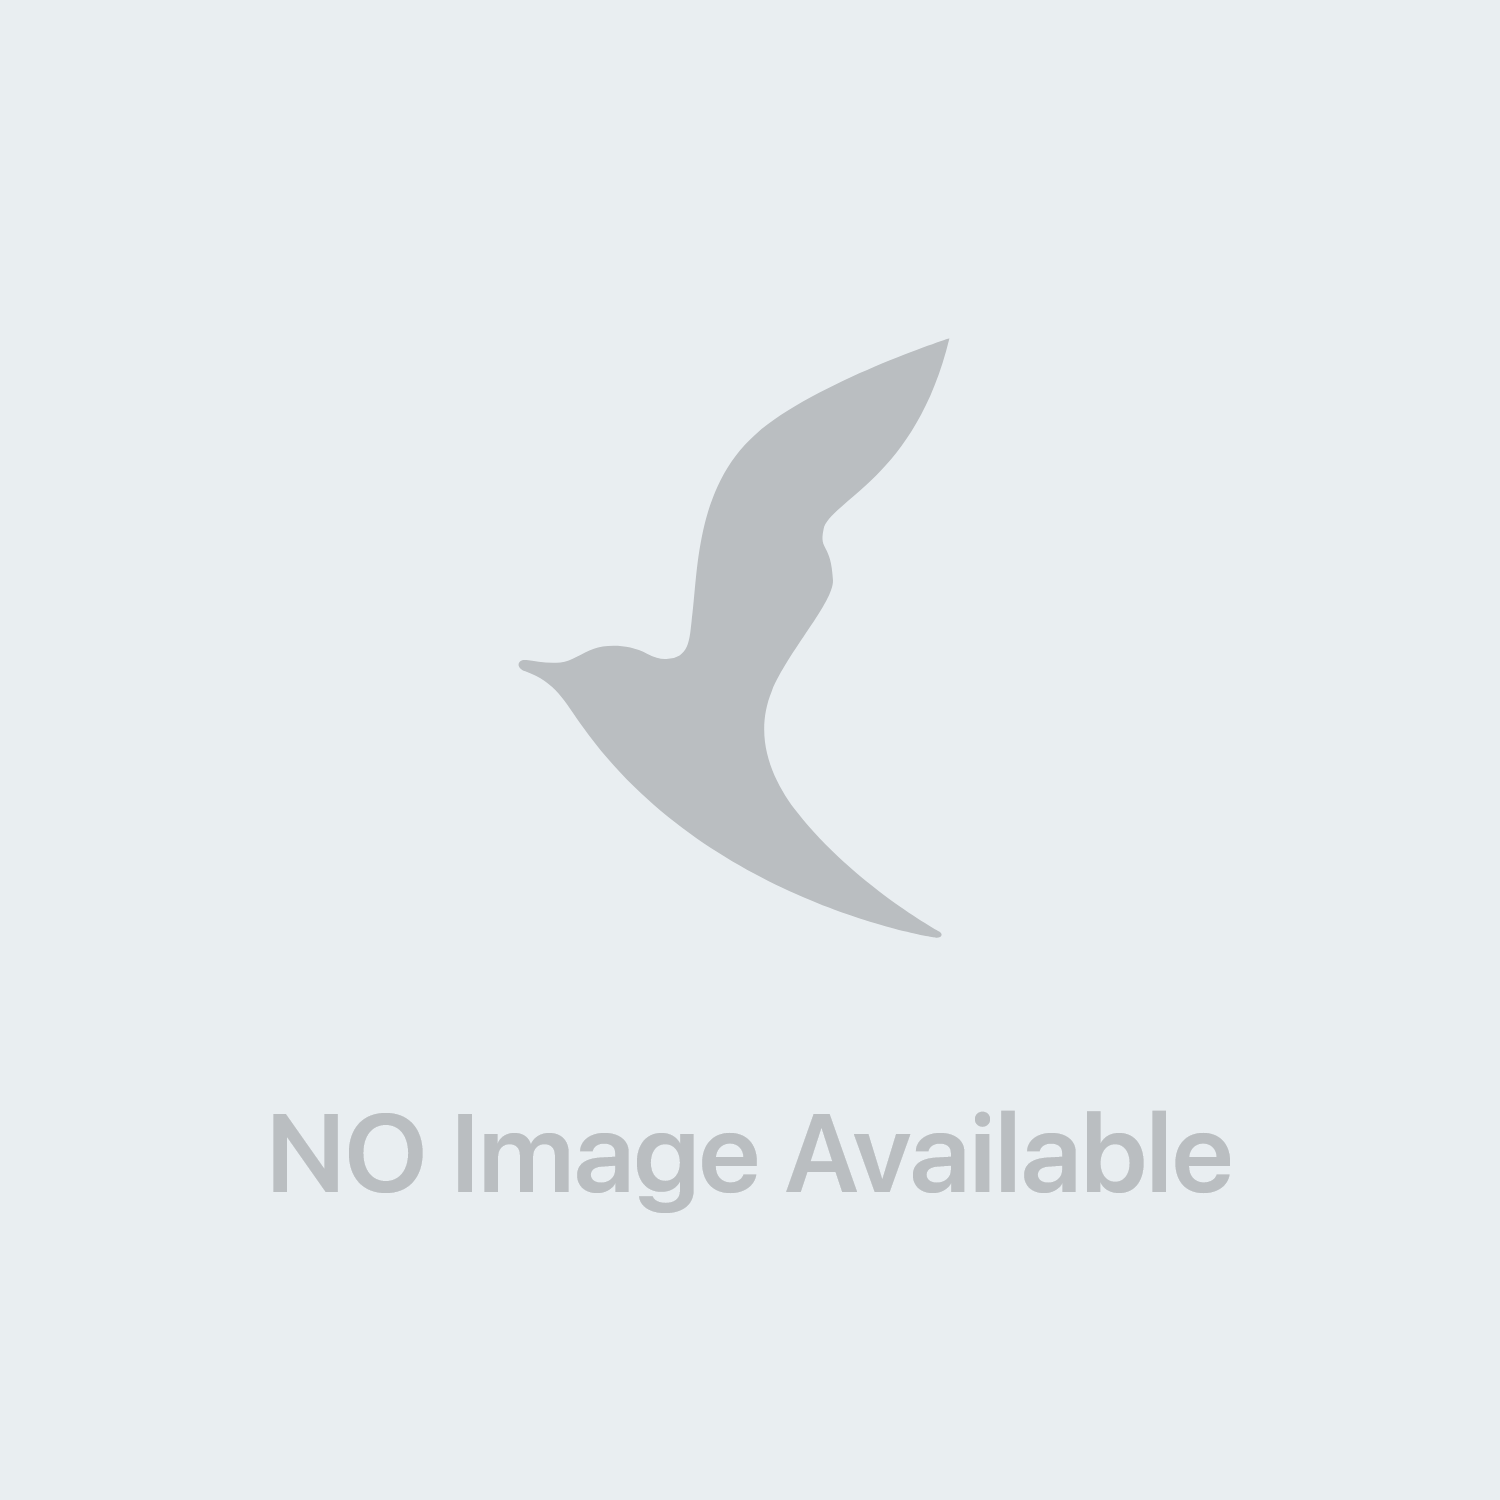 Fluental Bambini 10 Supposte 250 mg + 100 mg